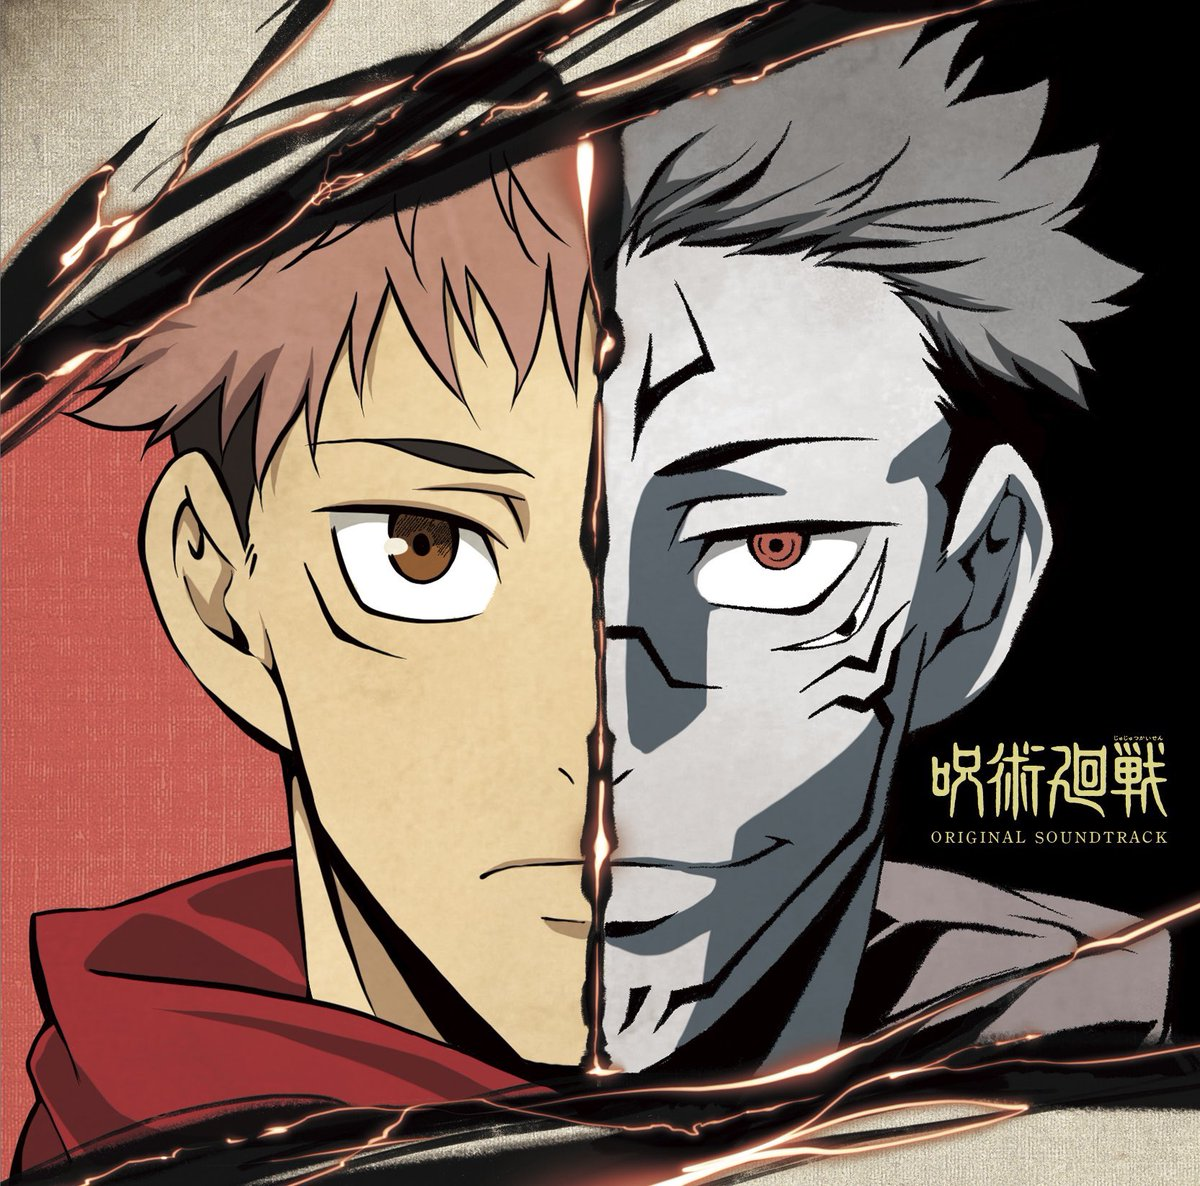 Jujutsu Kaisen On Twitter The Jujutsu Kaisen Anime Ost Is Officially Out Now On Several Platforms The Full Rollout Should Happen Between Now And Tomorrow Depending On Your Location Https T Co Jgx3pe9wco